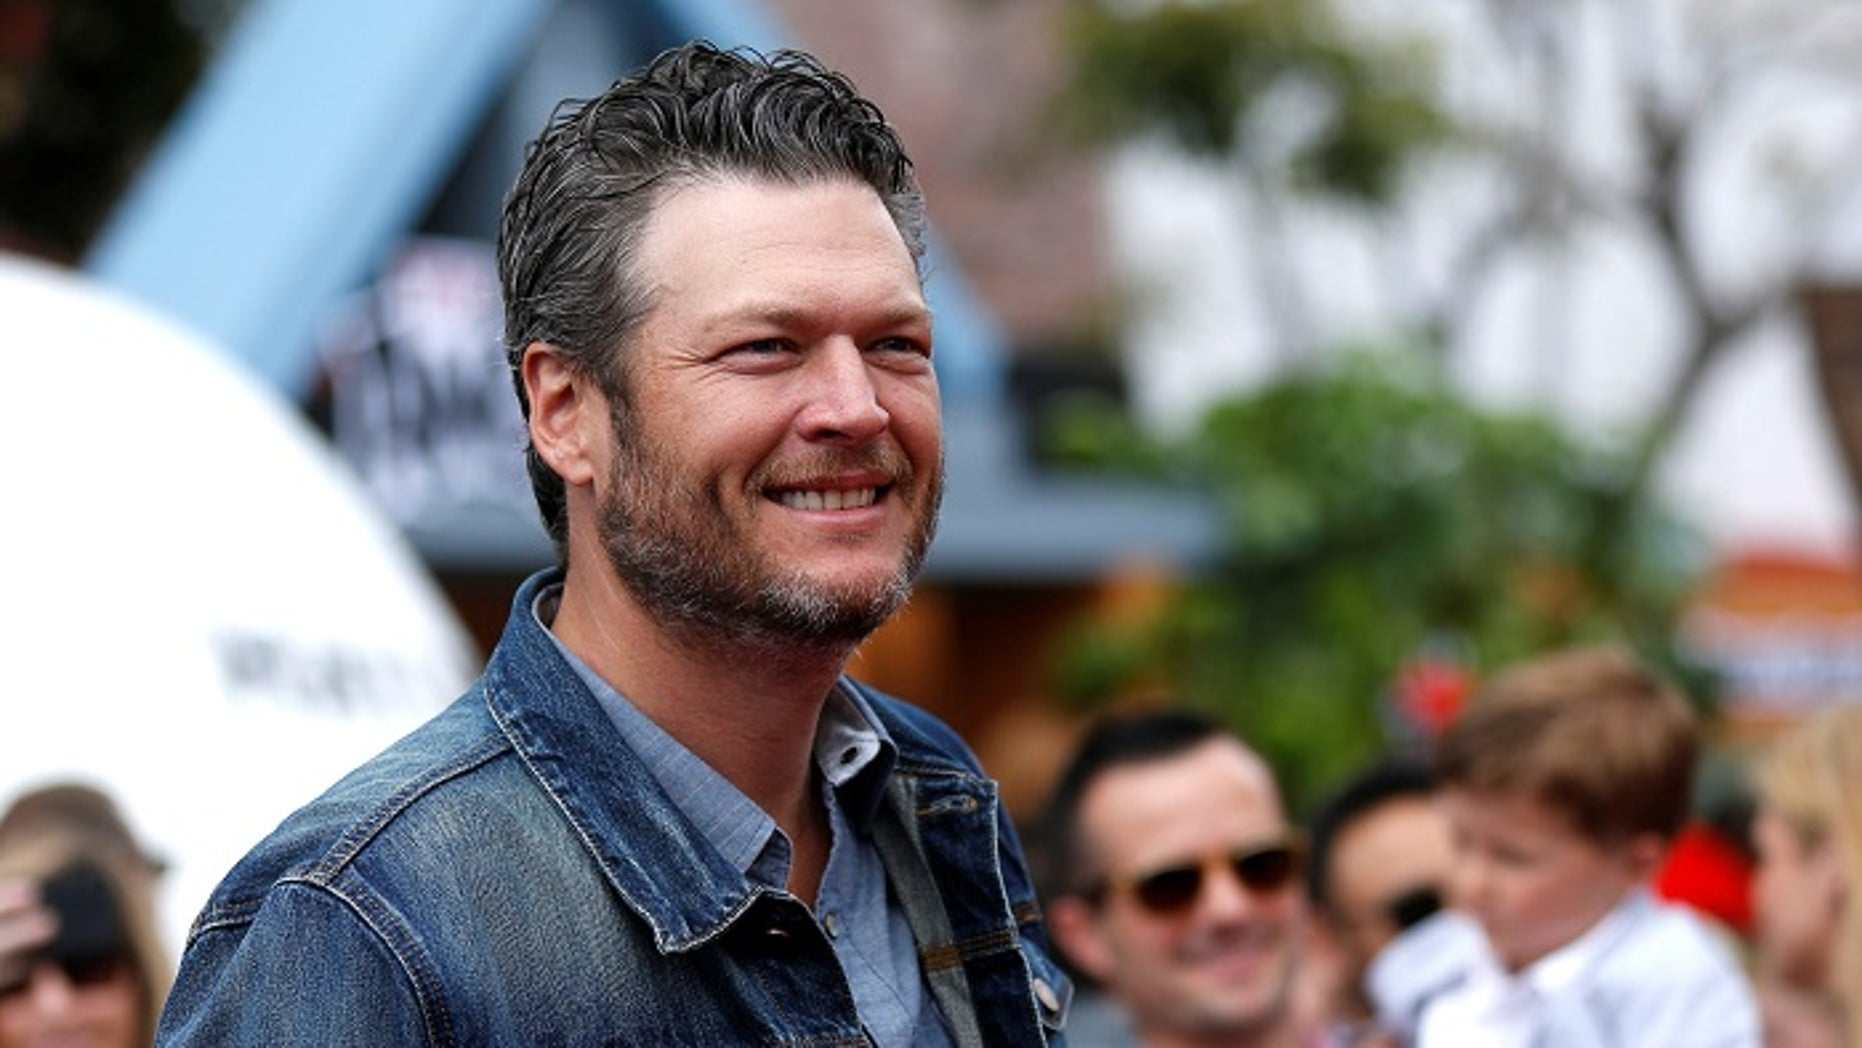 Blake Shelton talks about his decision to open a second Ole Red location.